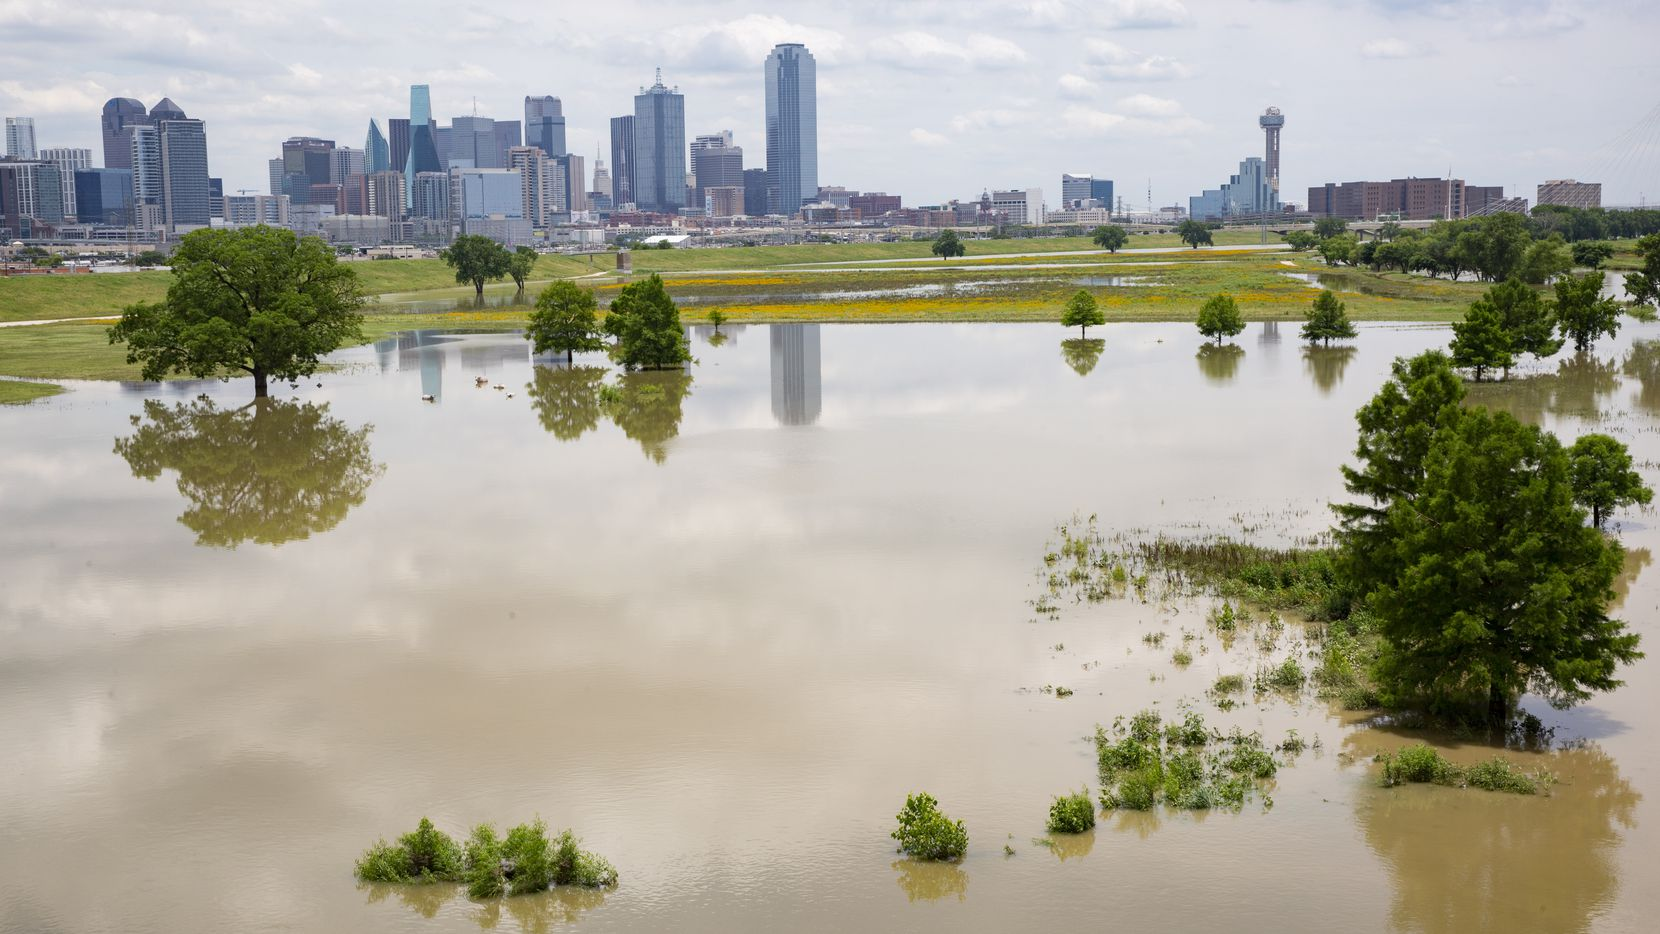 The Dallas Skyline seen from a flooded Trammell Crow Park and Trinity River on Wednesday, June 2, 2021, in Dallas.